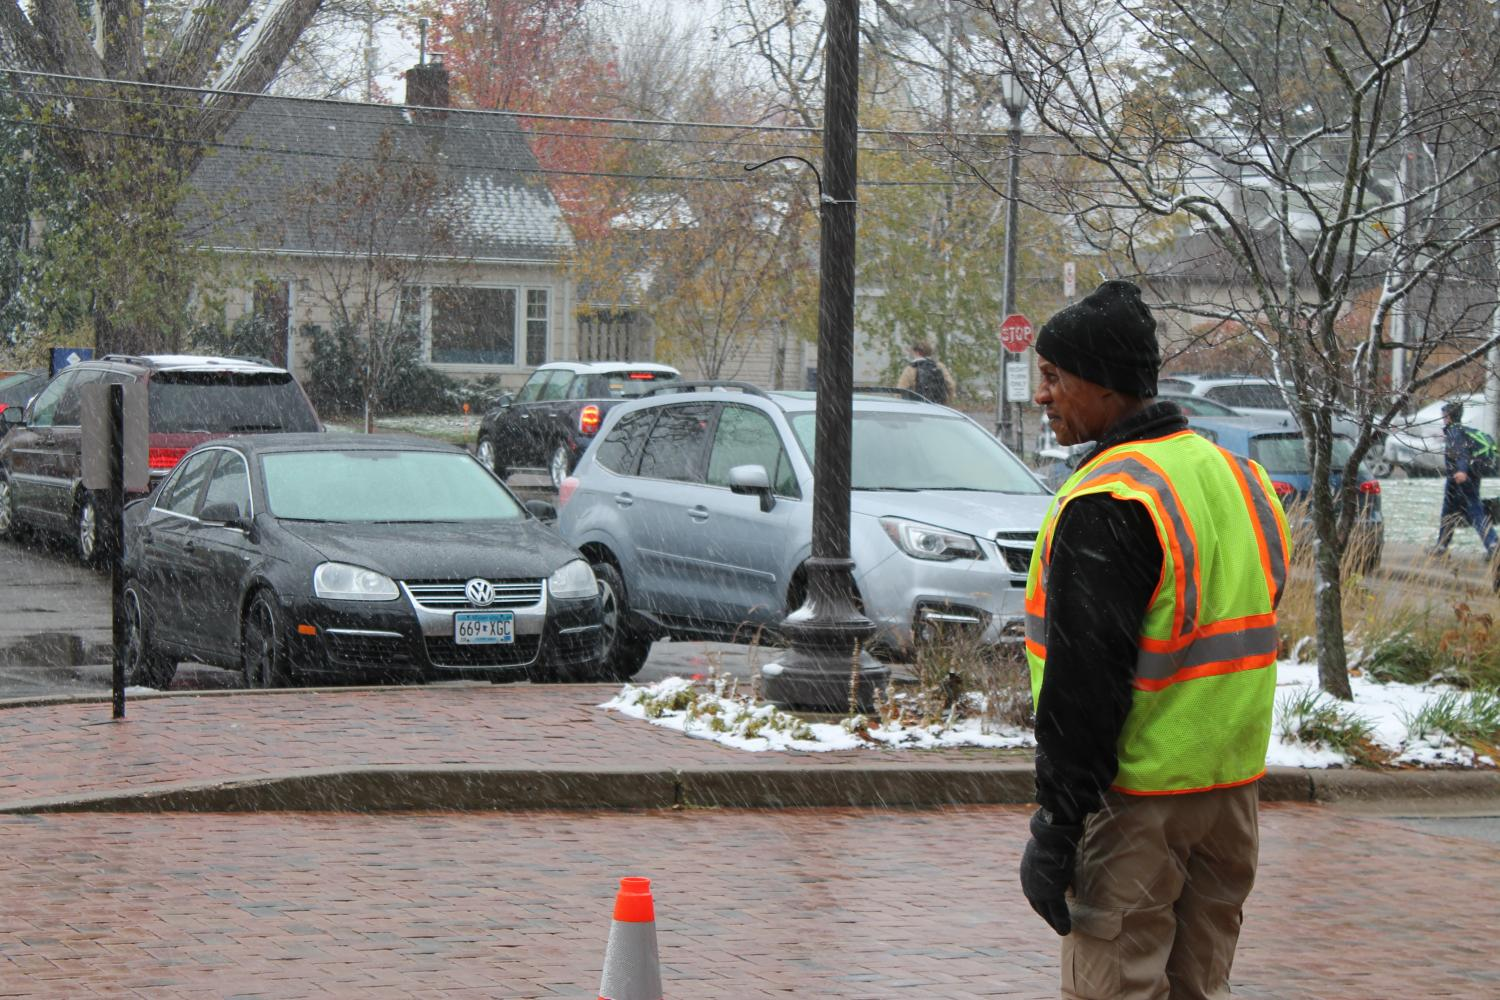 A+security+officer+waits+outside+in+the+morning+to+monitor+the+traffic+and+safety+of+the+students.